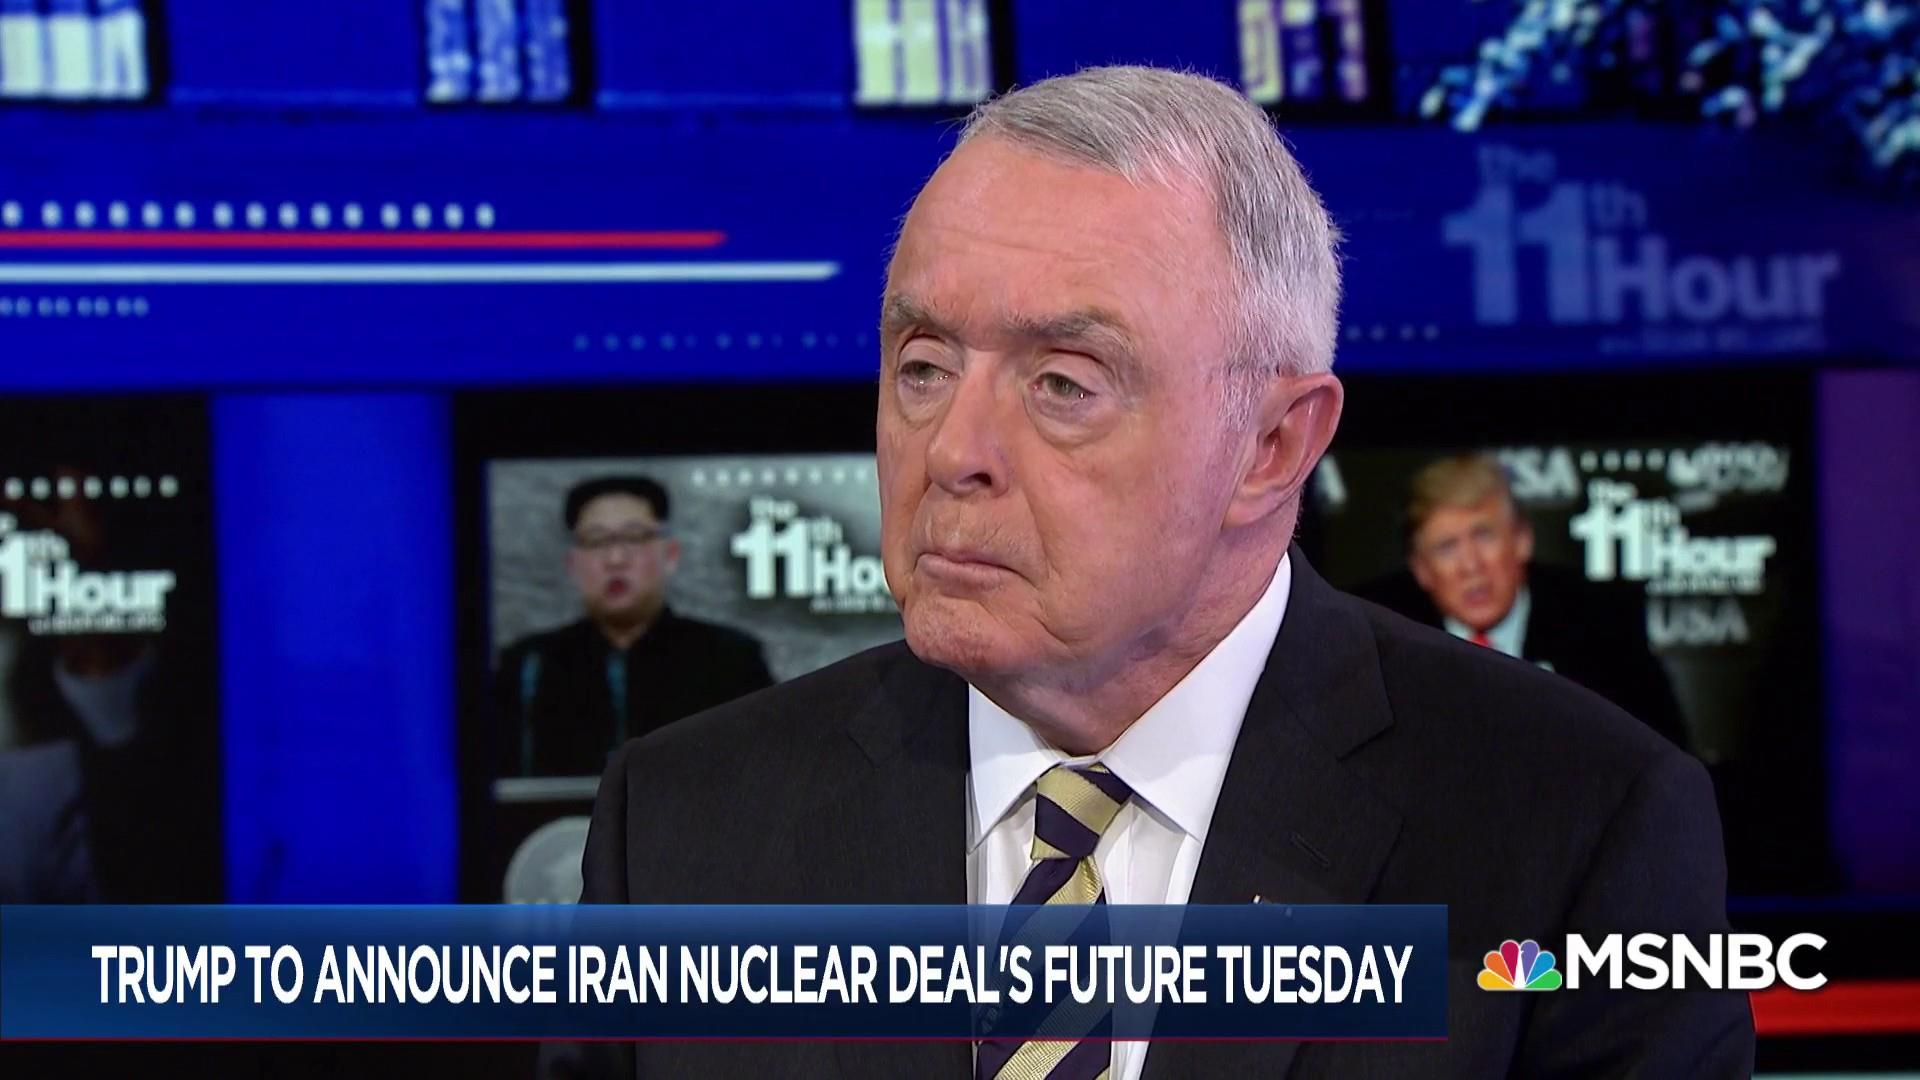 McCaffrey: We'll be in 'real trouble' if Trump ditches Iran deal